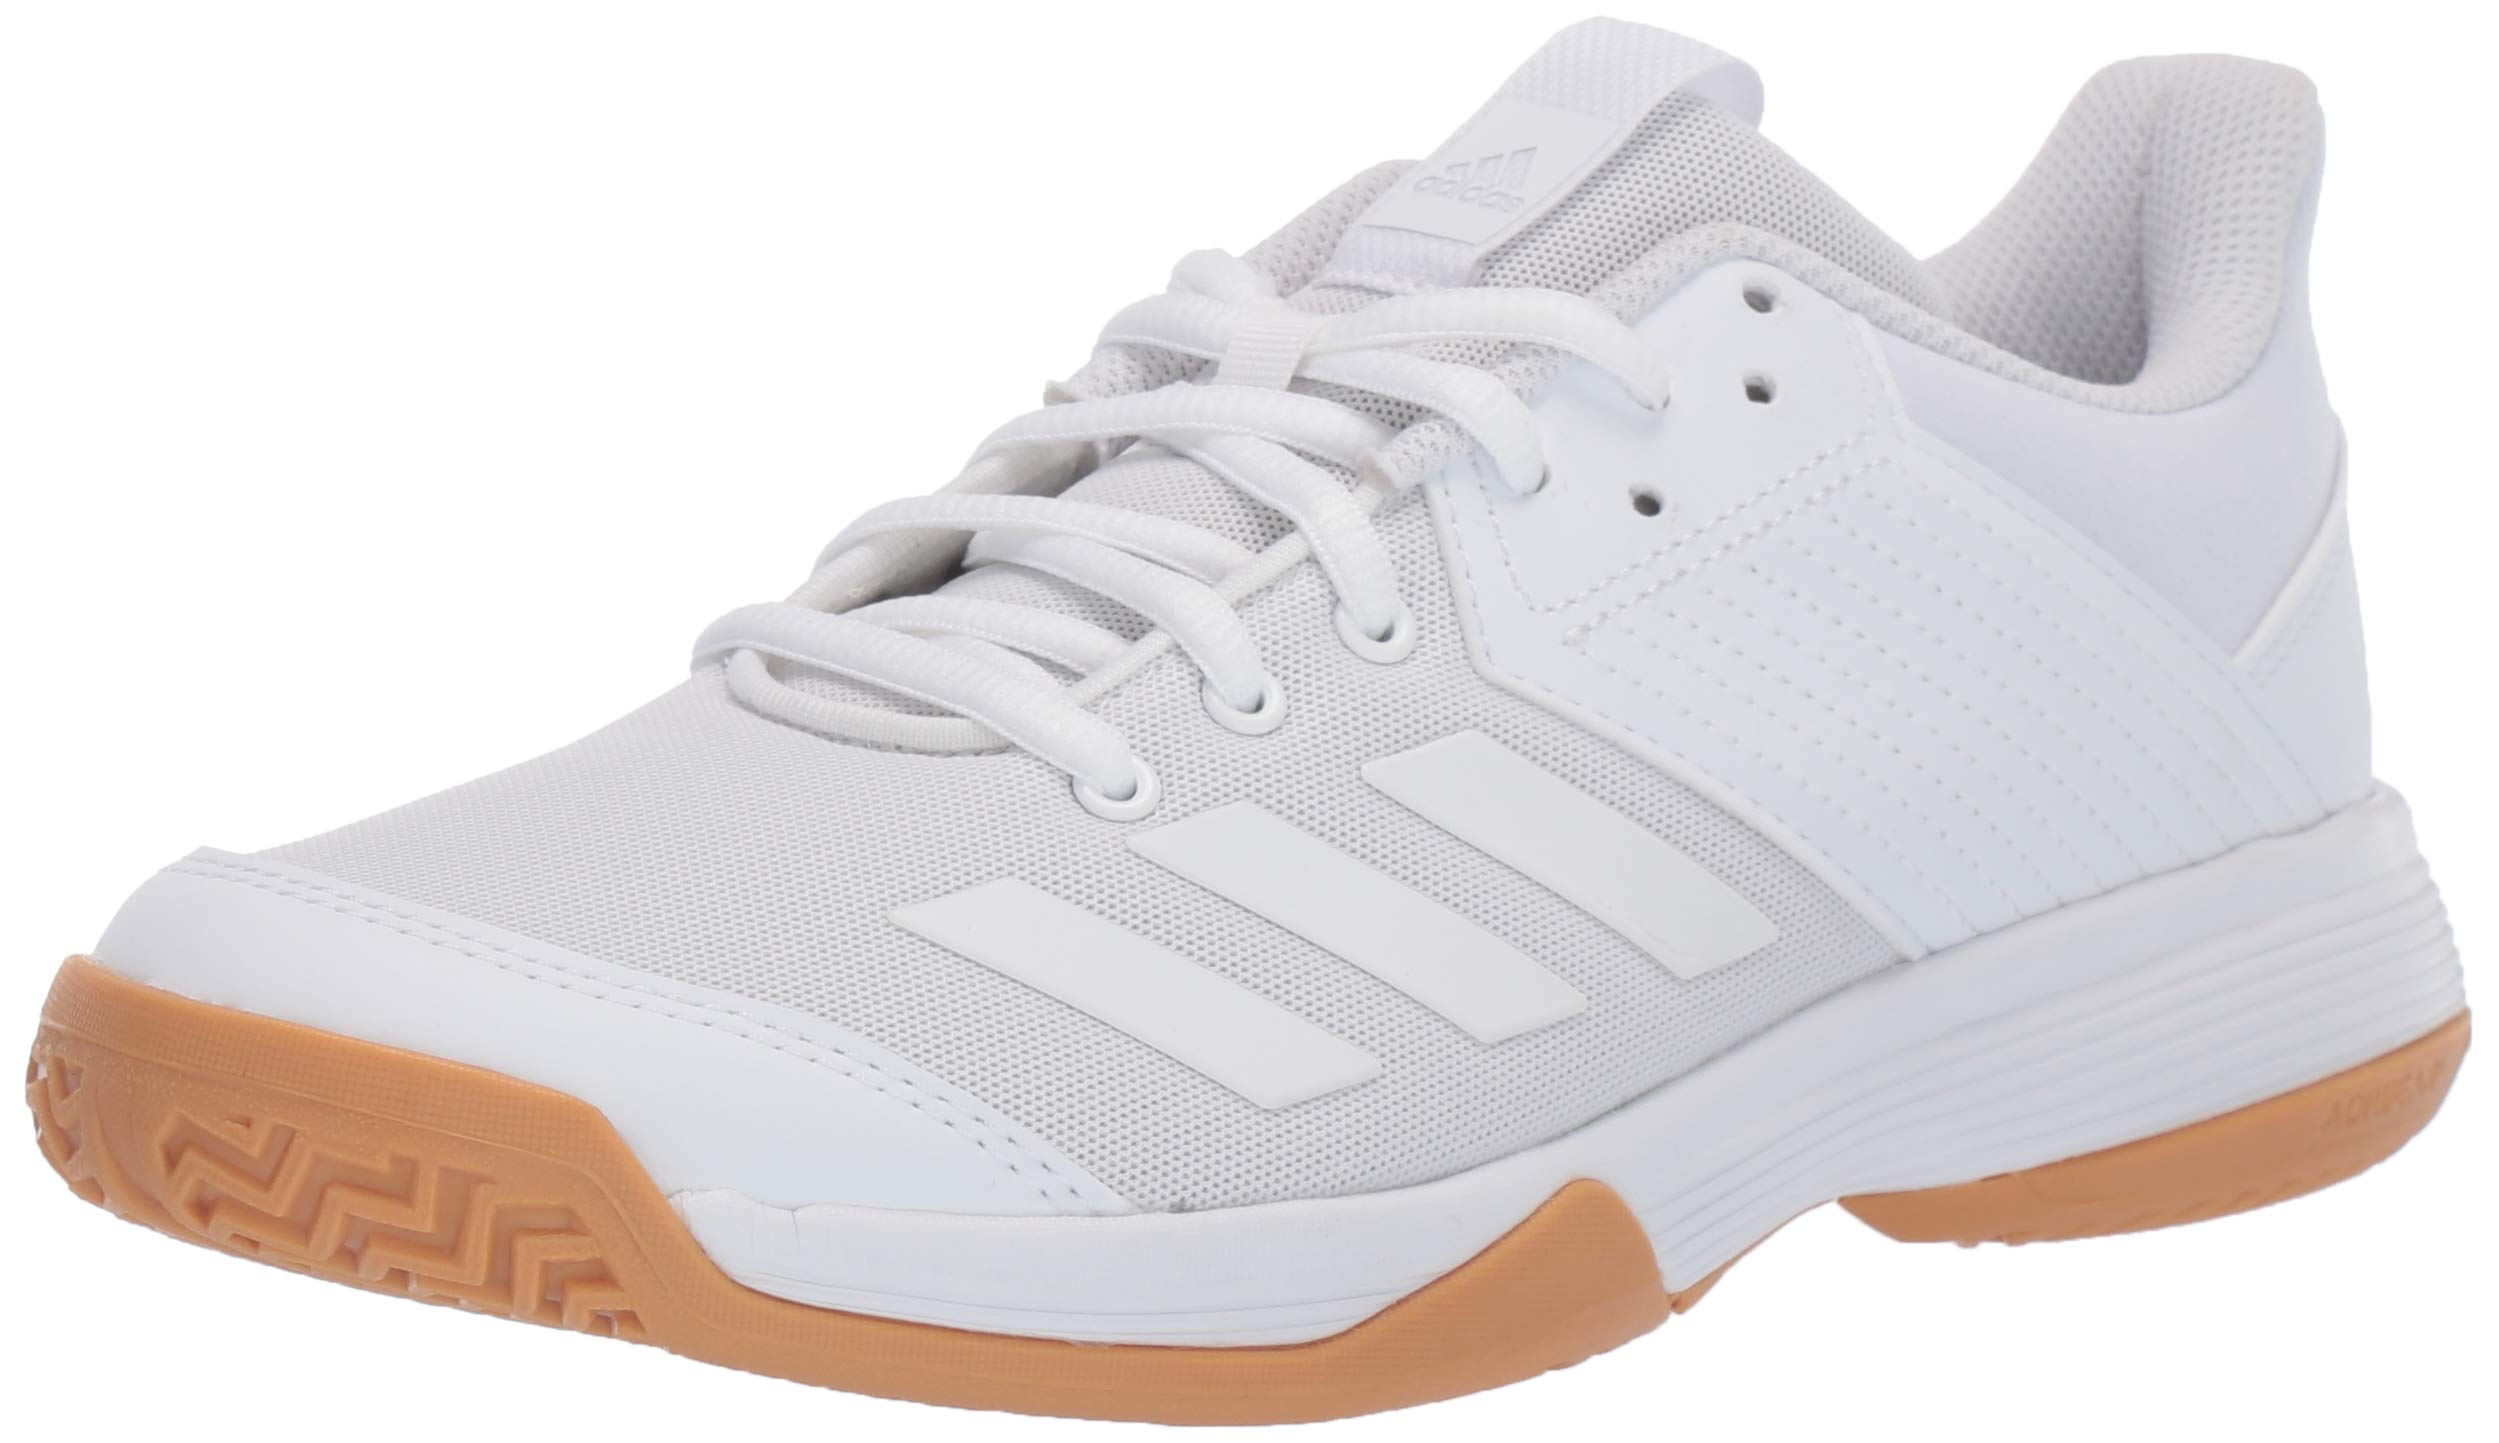 adidas Women's Ligra 6 Volleyball Shoe, White/Gum, 9.5 M US by adidas